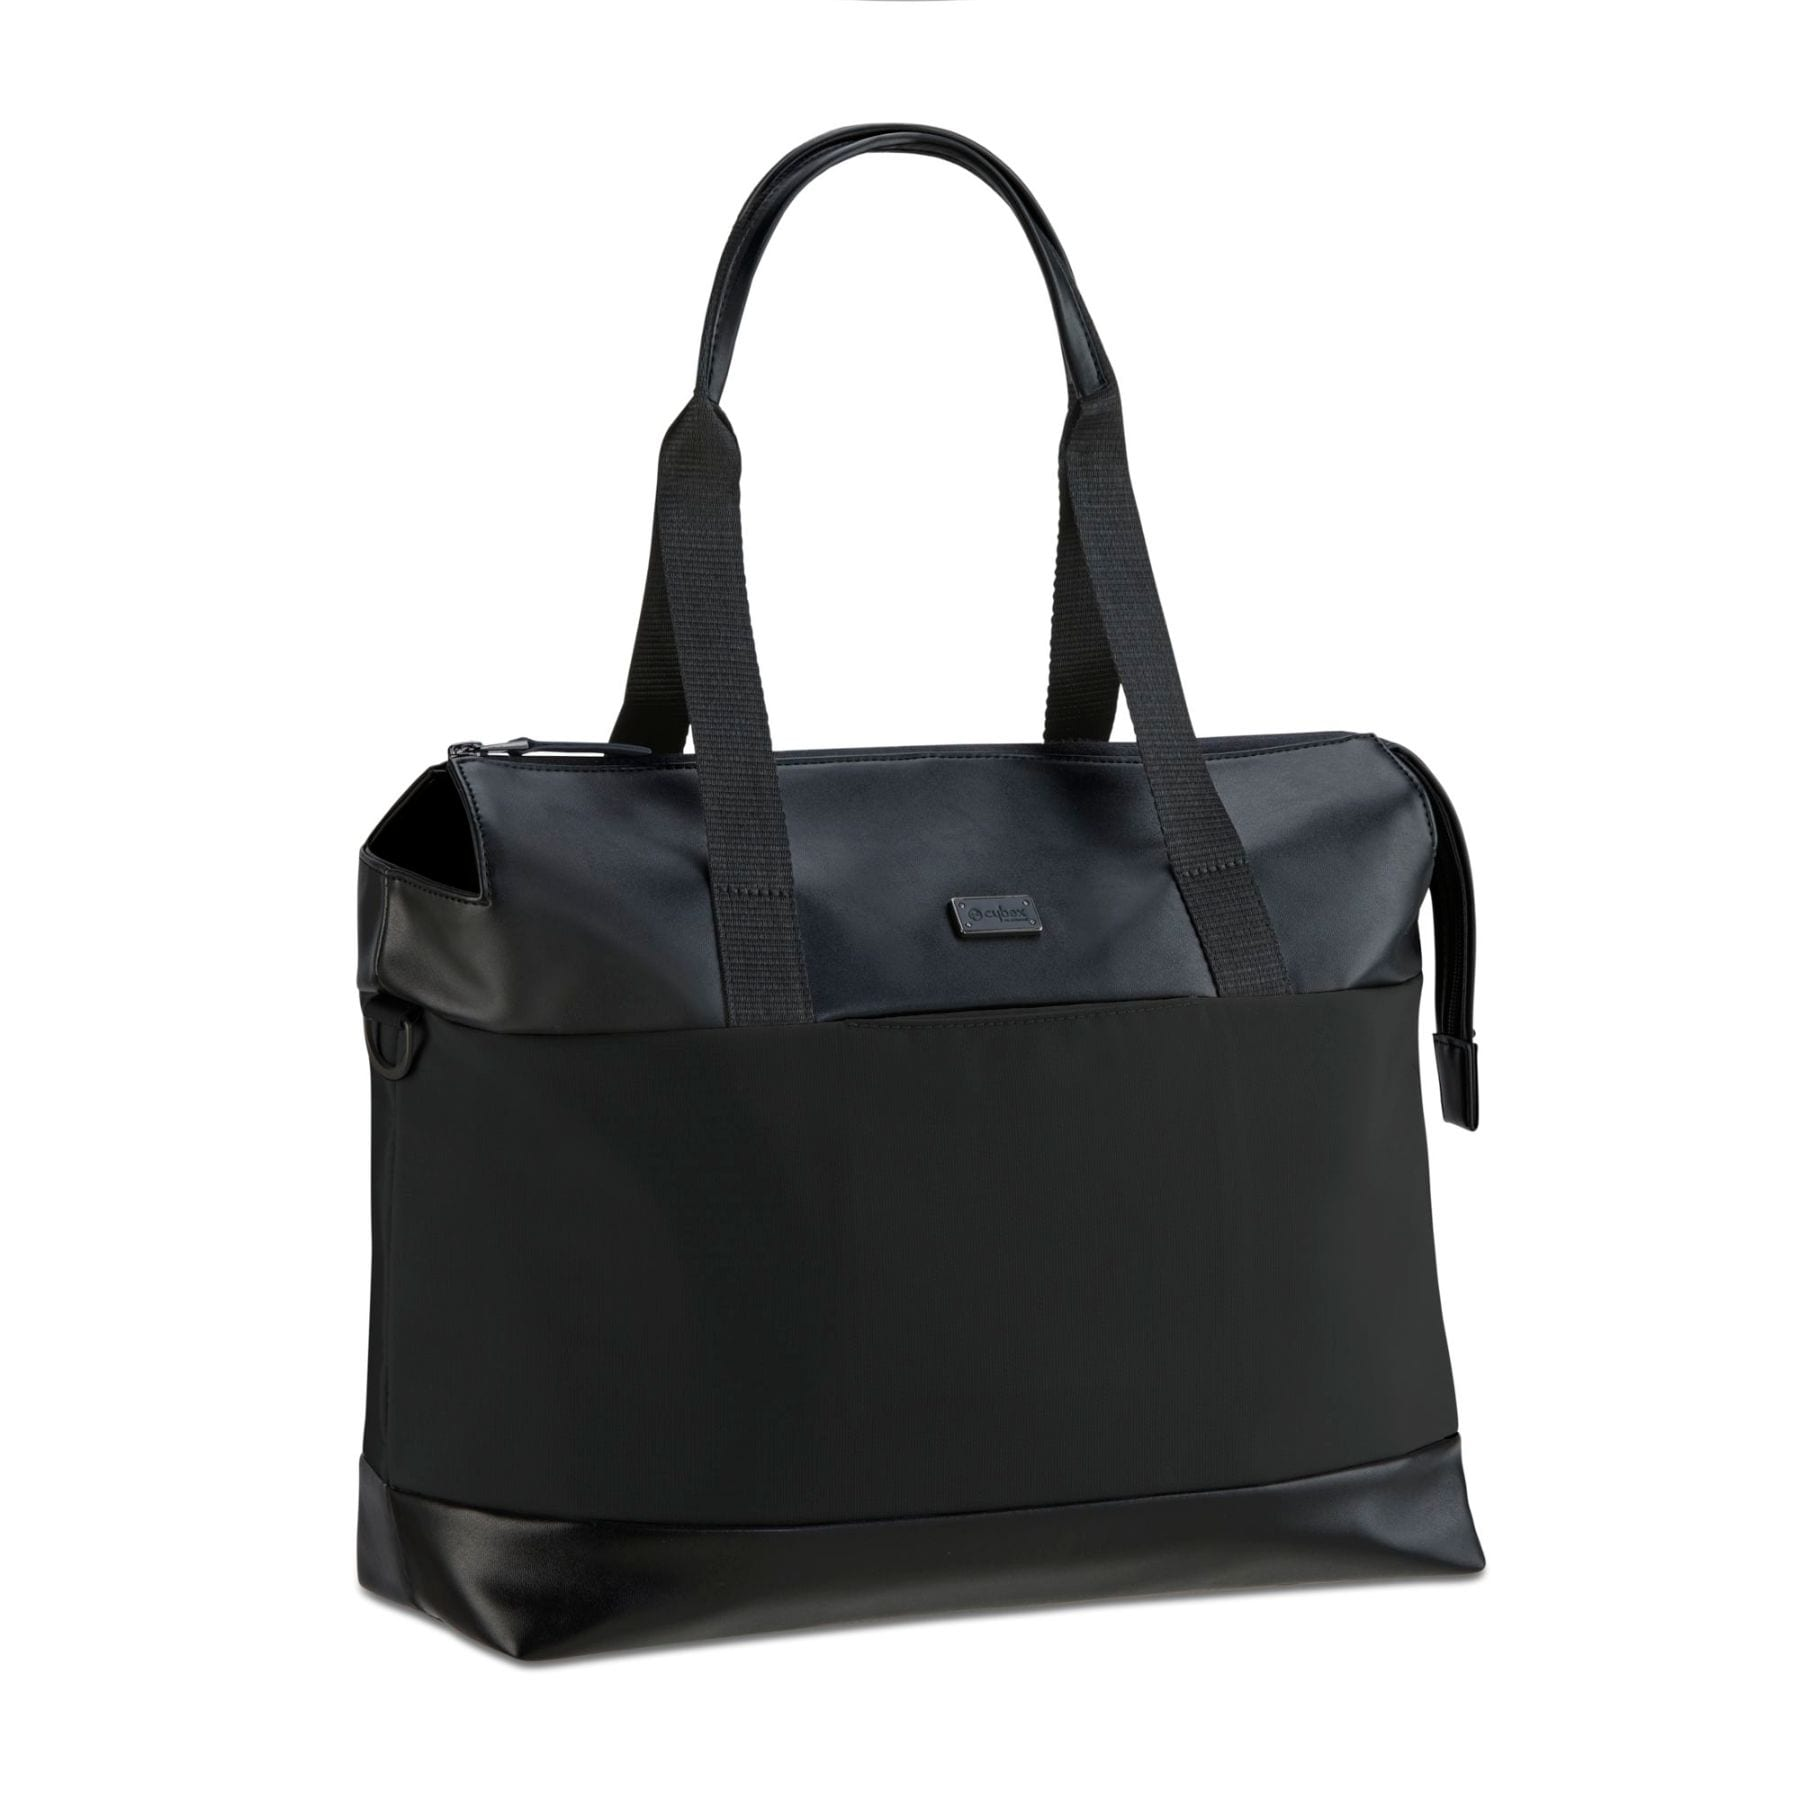 Cybex Mios Changing Bag - Deep Black